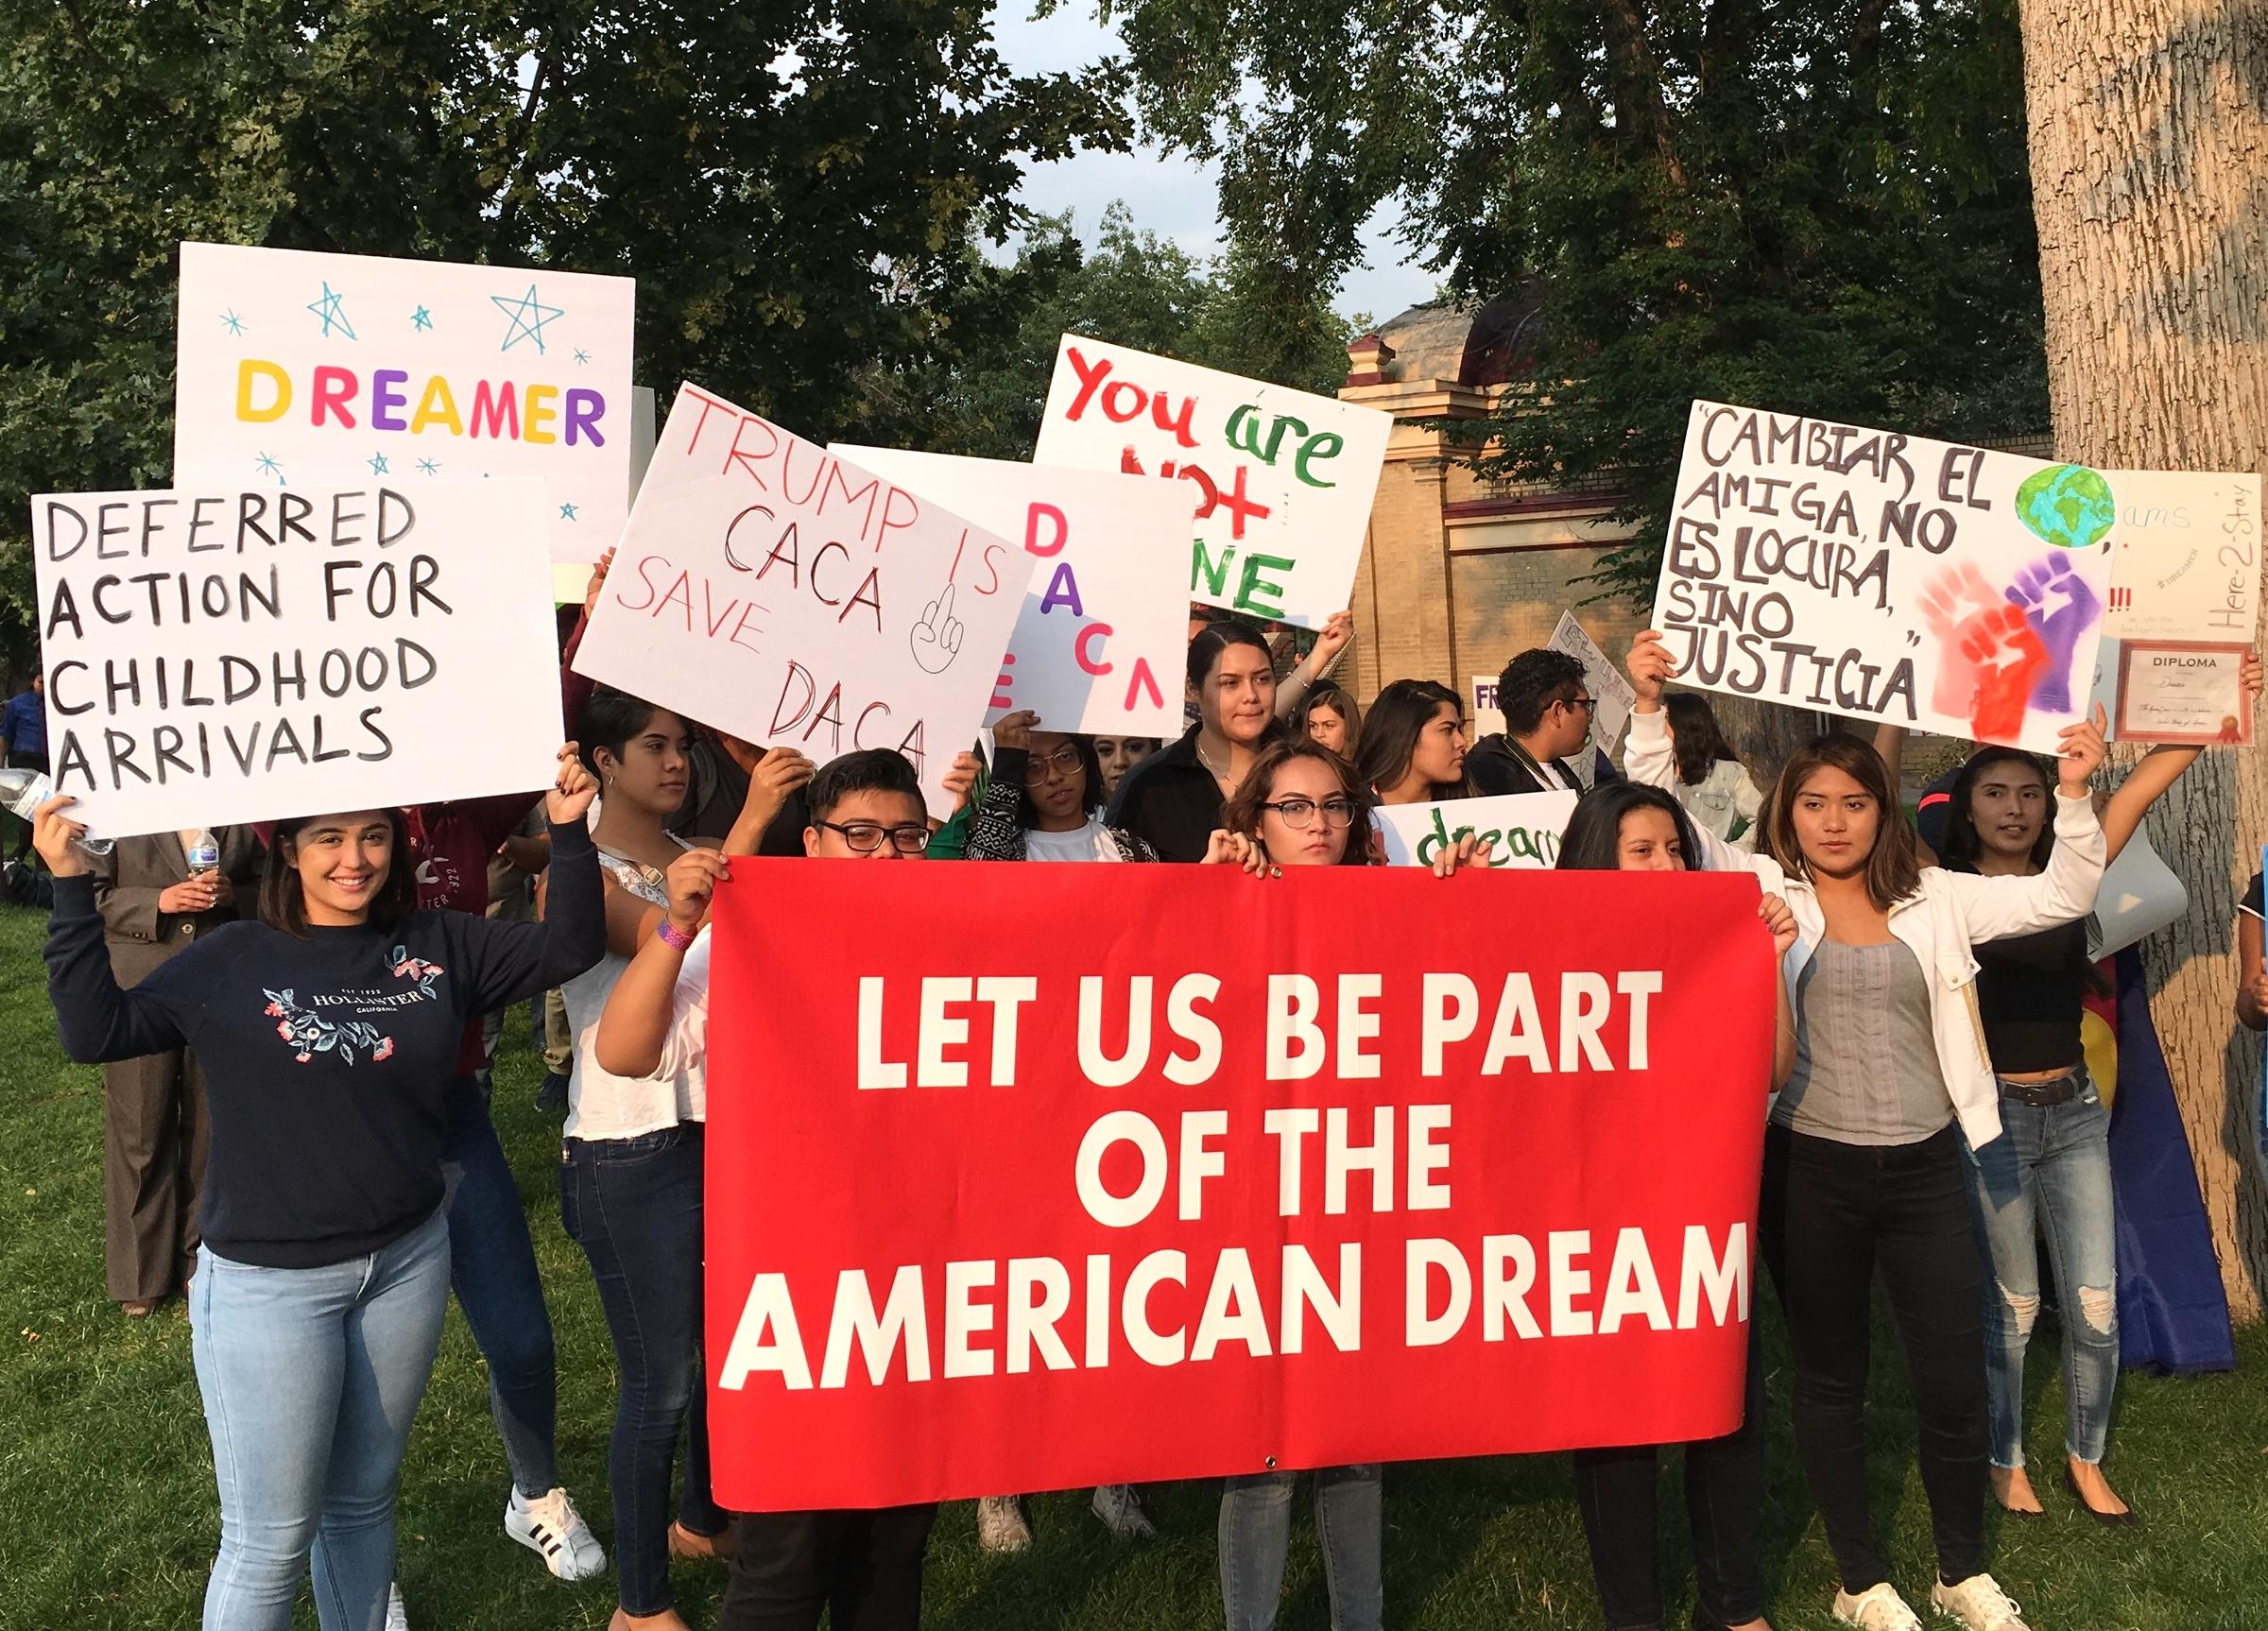 Hundreds rally in support of DACA